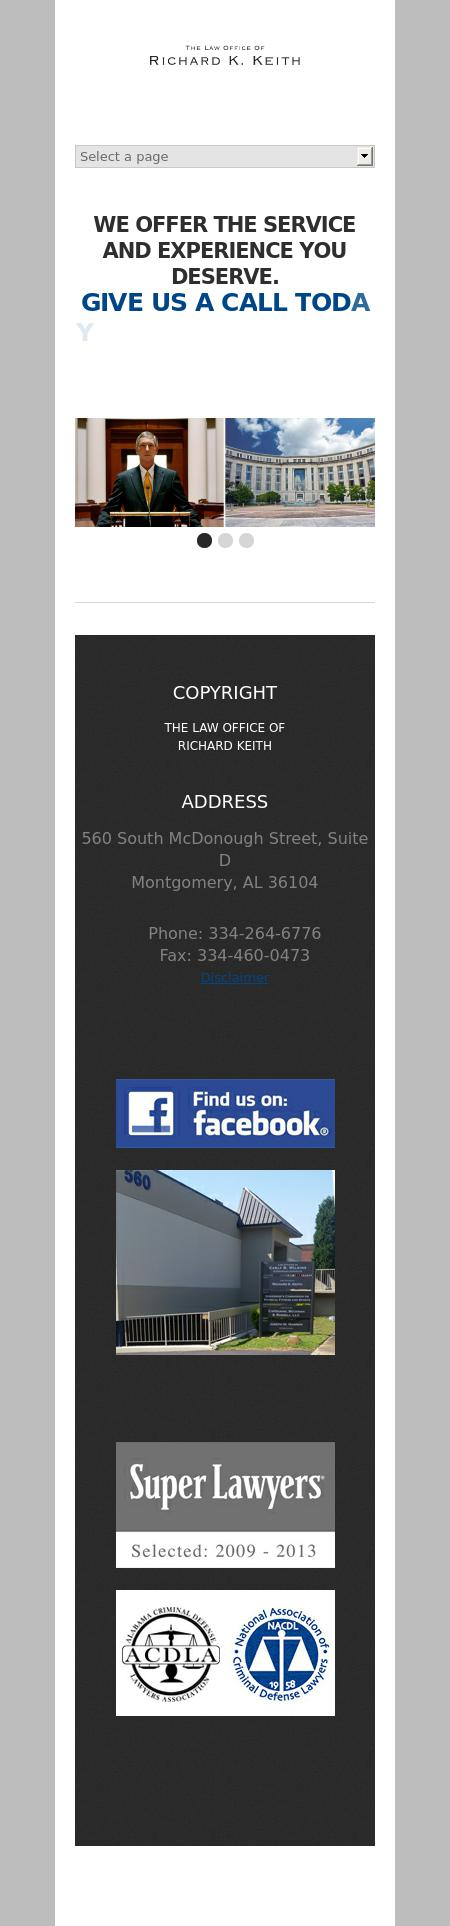 Richard K Keith - Montgomery AL Lawyers